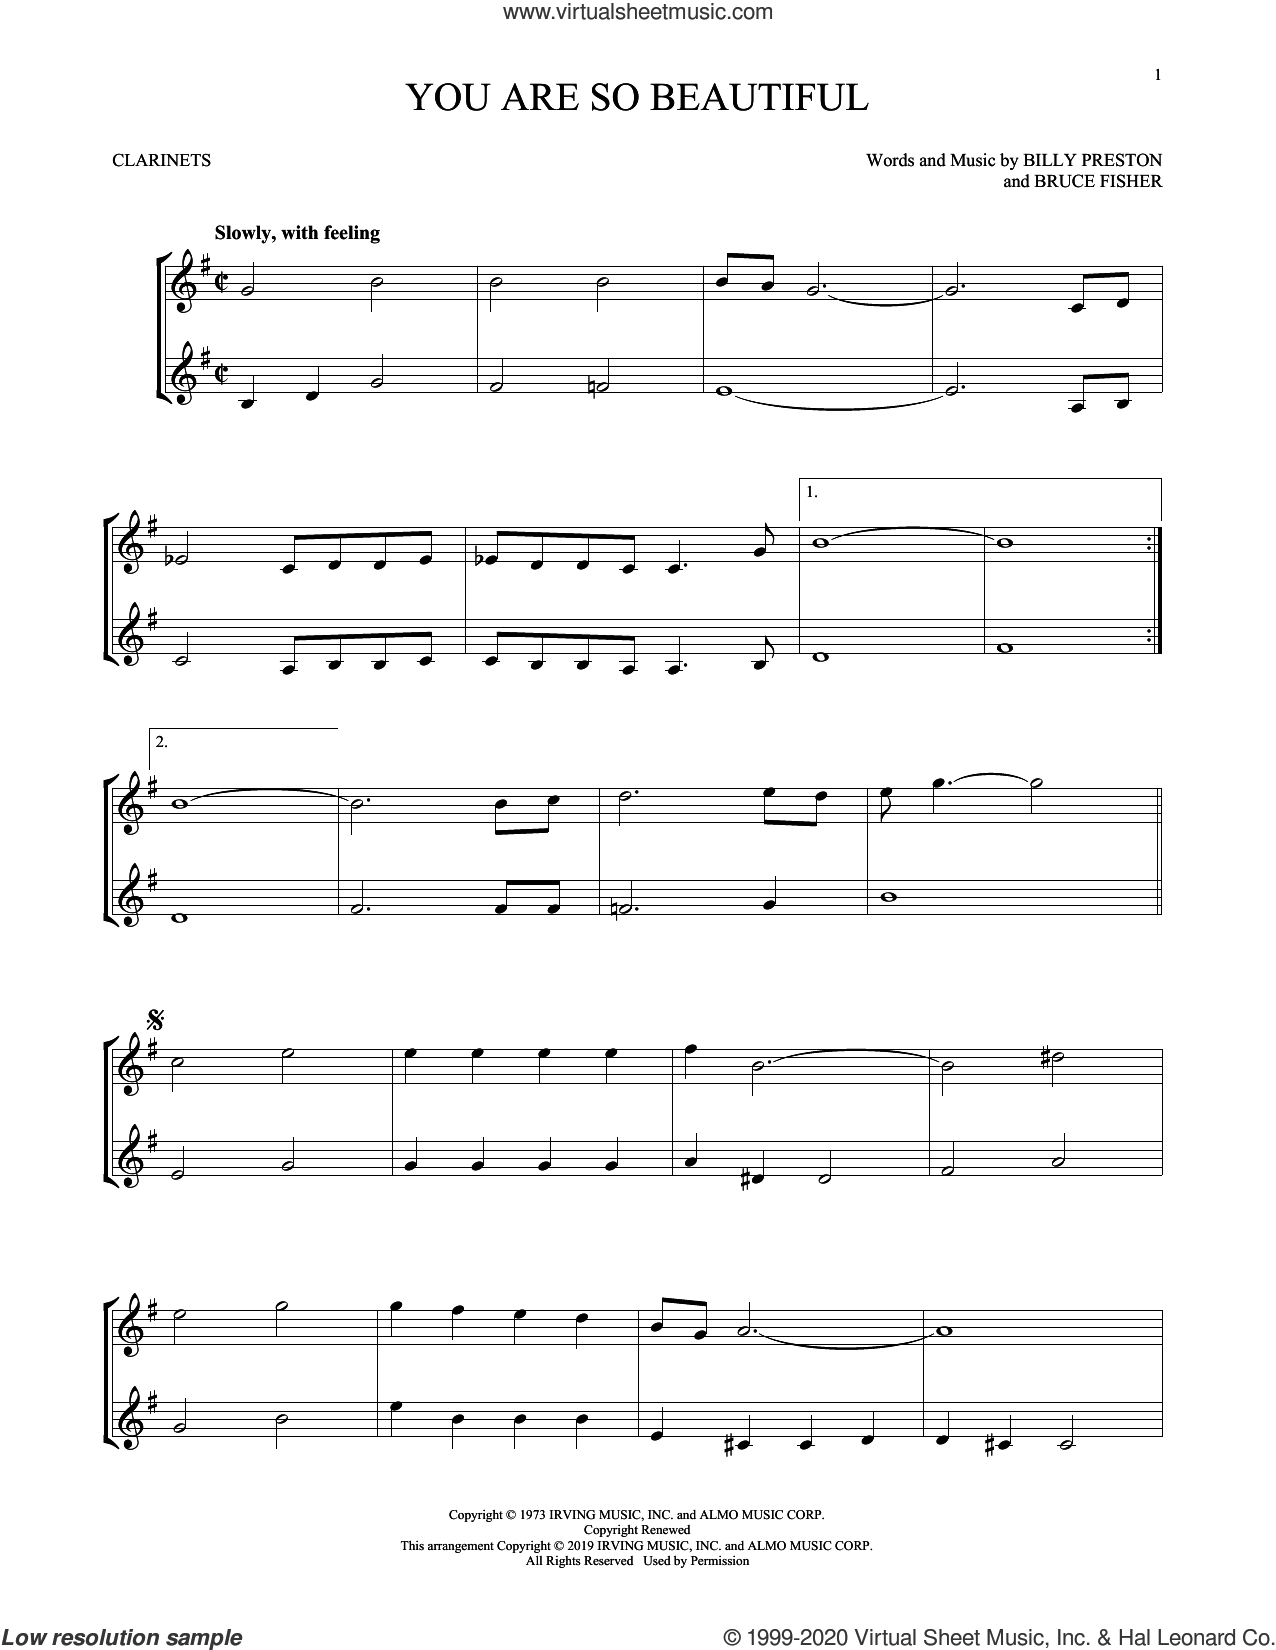 You Are So Beautiful sheet music for two clarinets (duets) by Joe Cocker, Billy Preston and Bruce Fisher, intermediate skill level